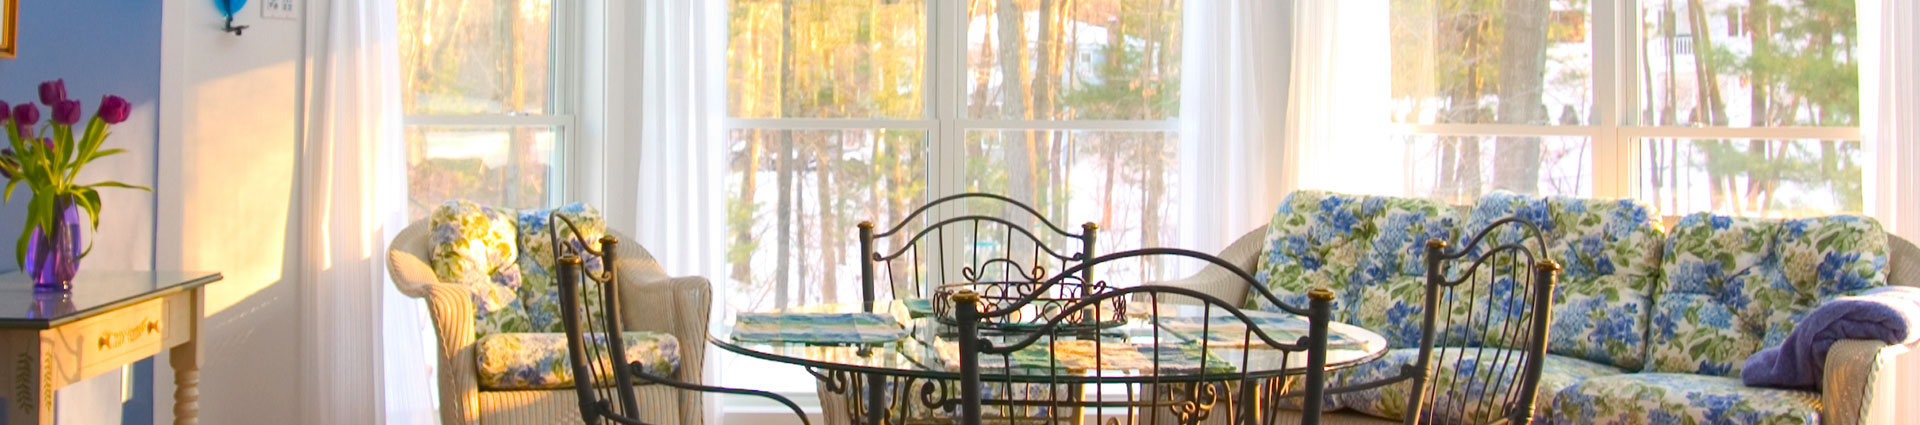 sunroom porch remodel services